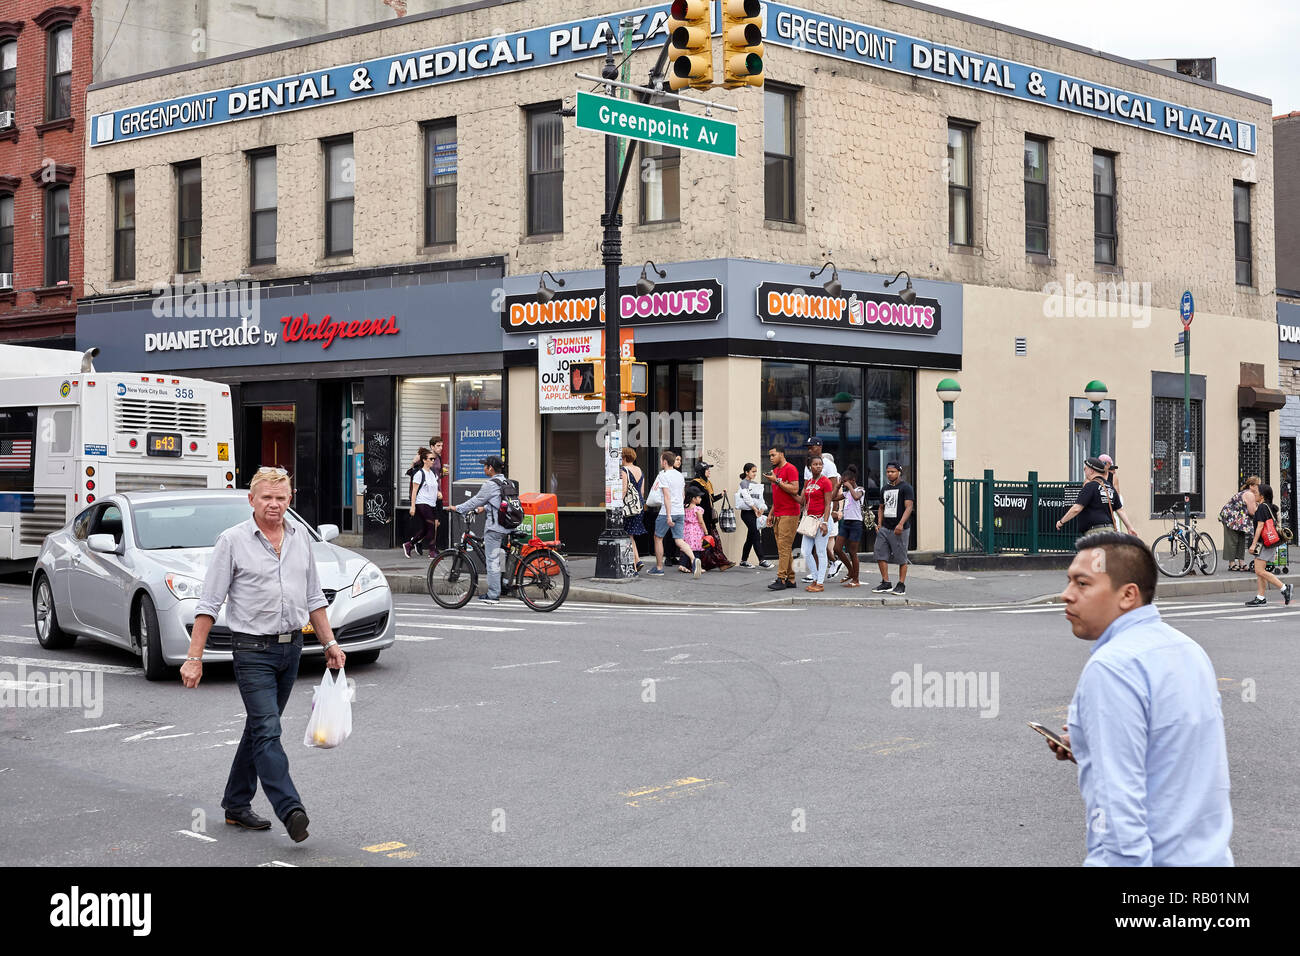 New York, USA - July 04, 2018: Dunkin Donuts at Greenpoint Avenue, neighborhood also know as Little Poland. - Stock Image